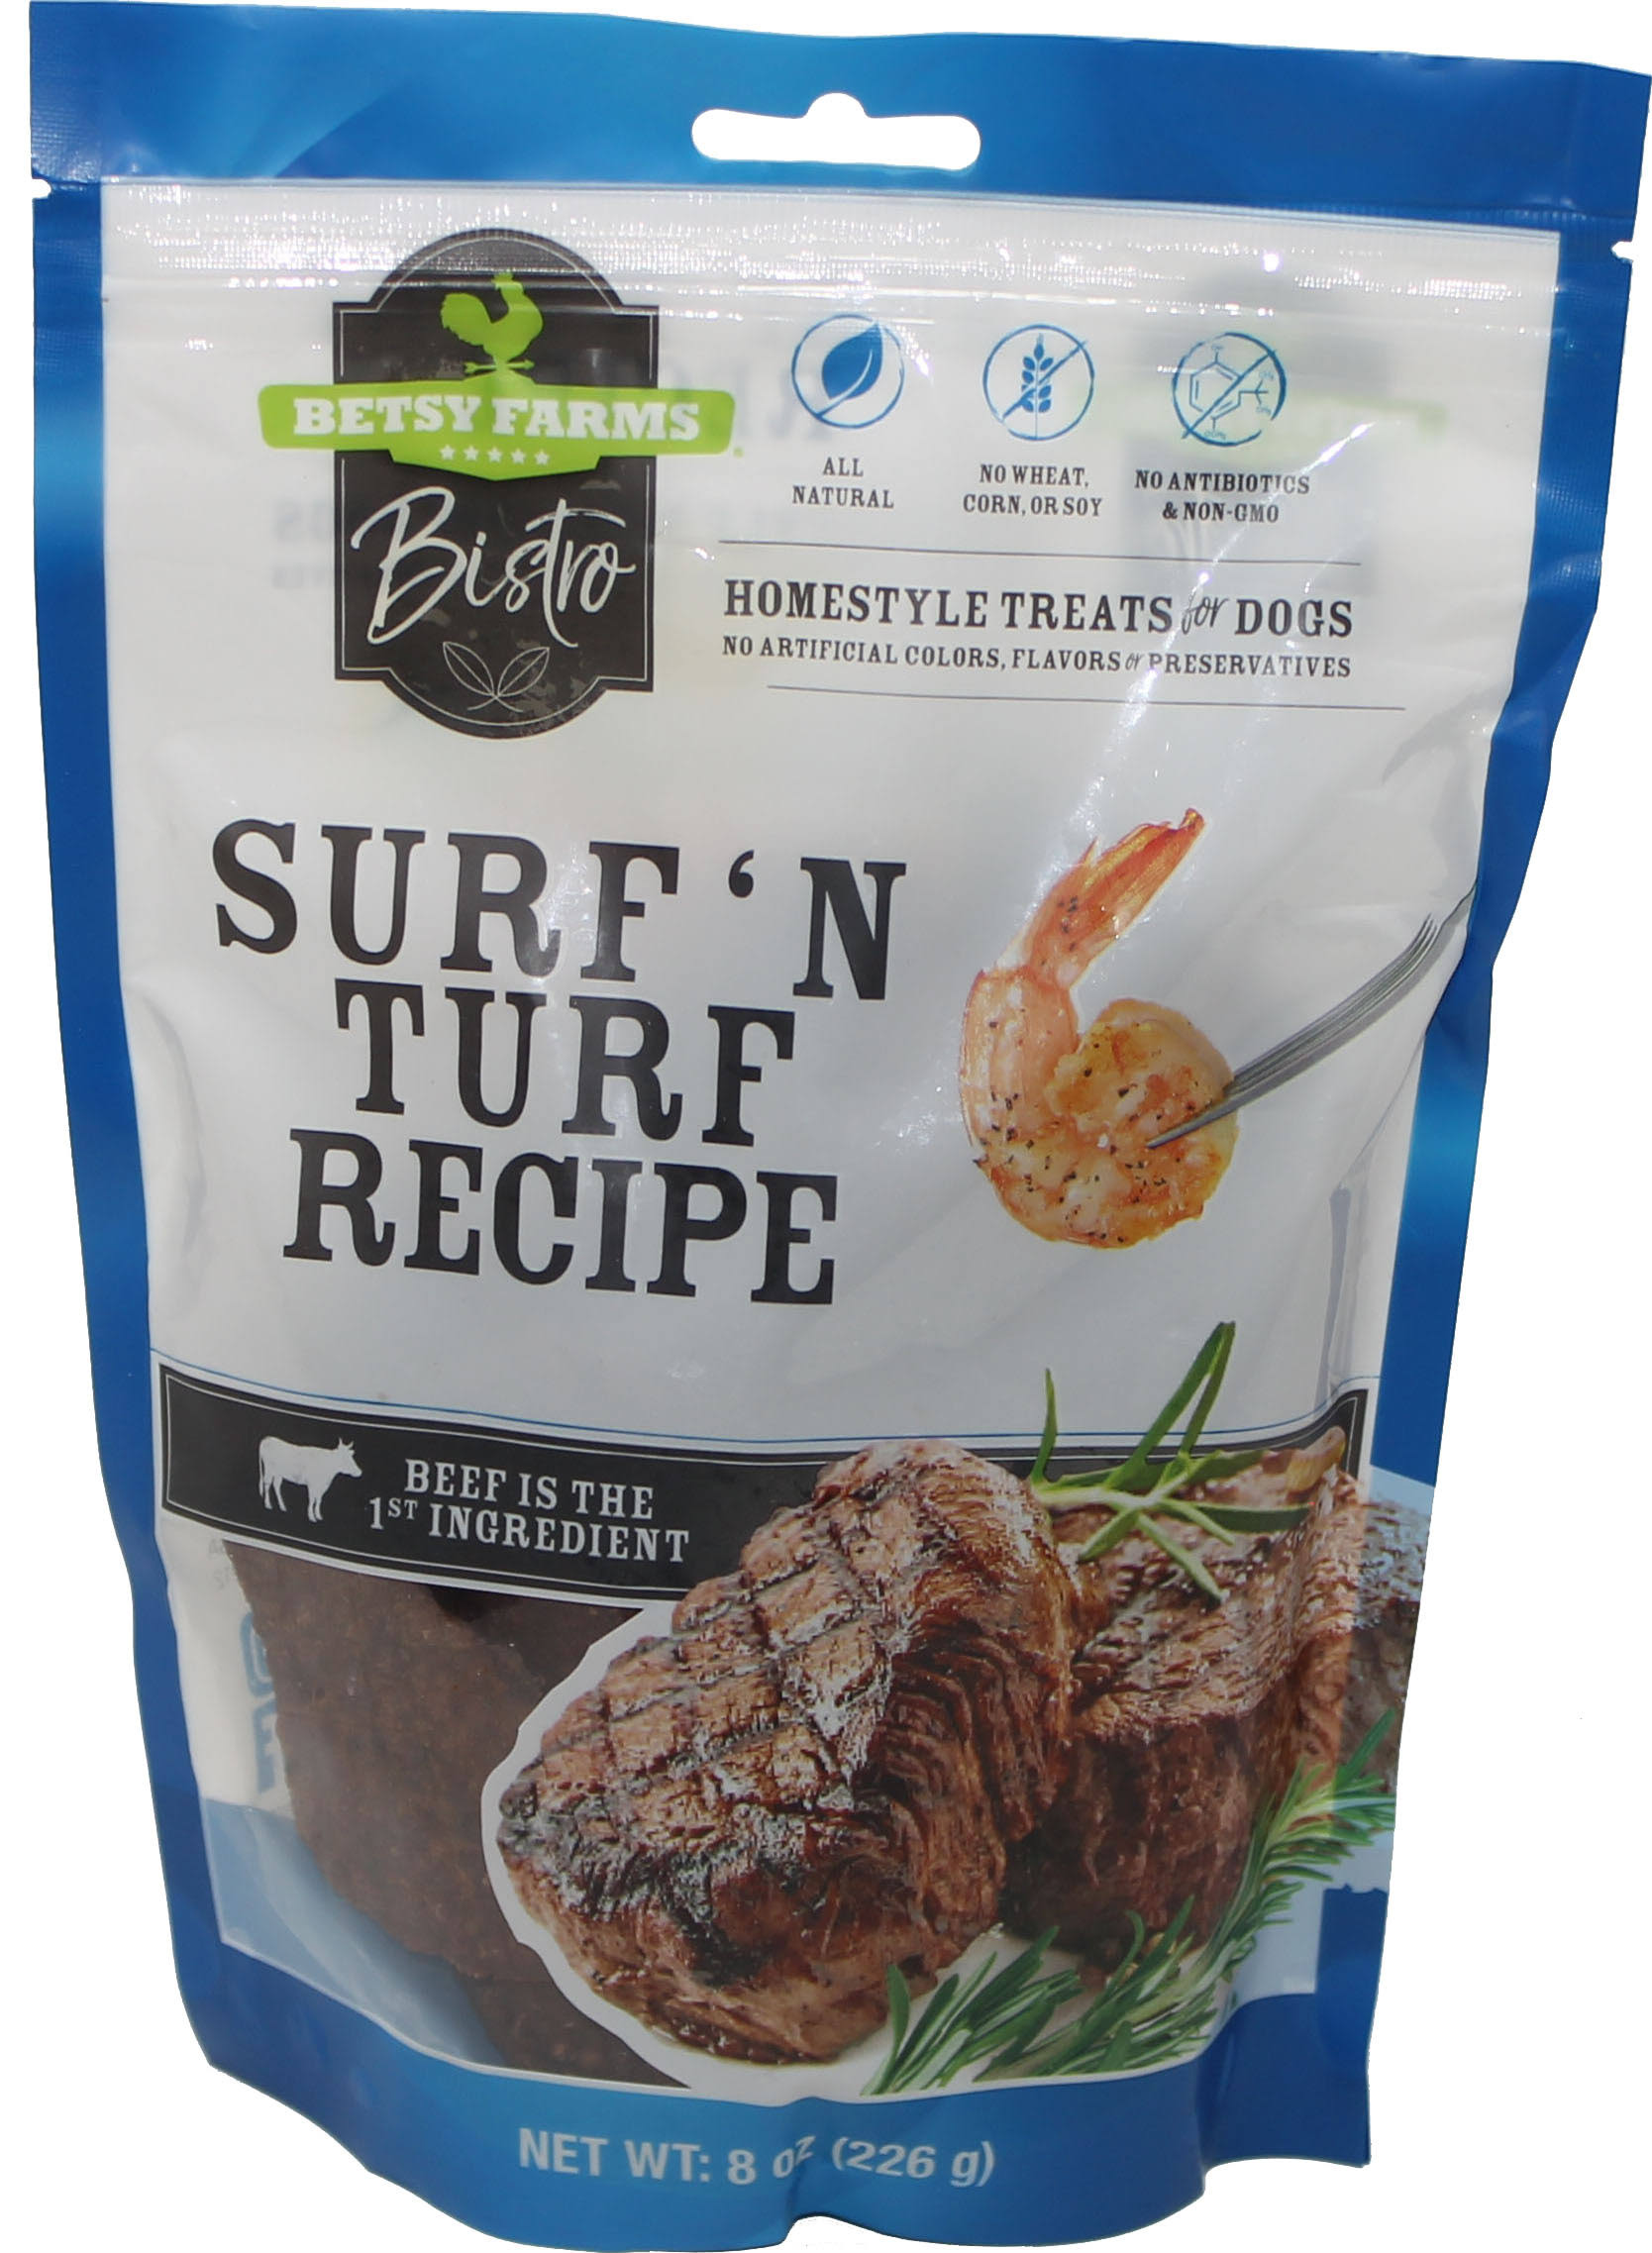 Betsy Farms Bistro Treats for Dogs, Homestyle, Surf 'N Turf Recipe - 8 oz